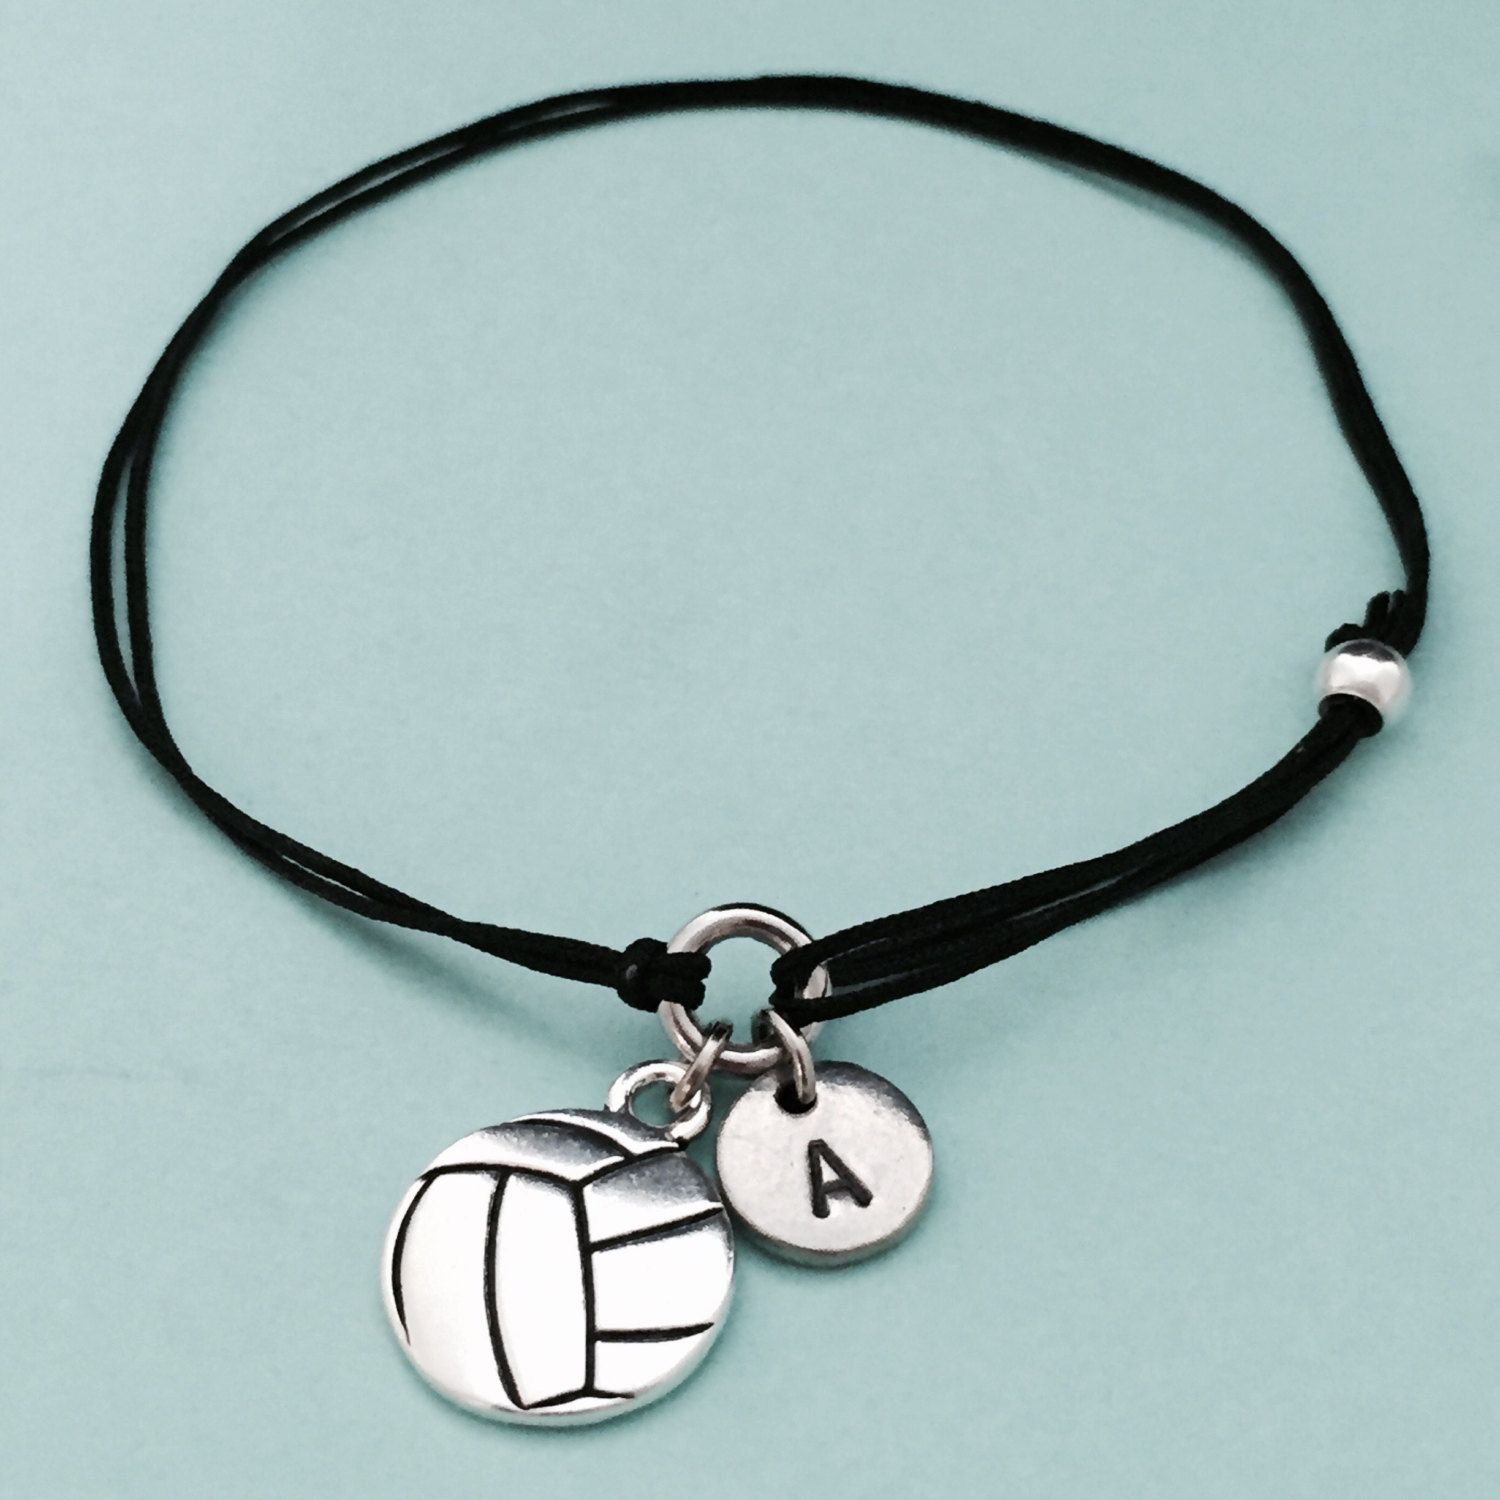 Volleyball Cord Bracelet Volleyball Charm Bracelet Adjustable Bracelet Charm Cord Bracelets Personalized Bracelets Adjustable Bracelet